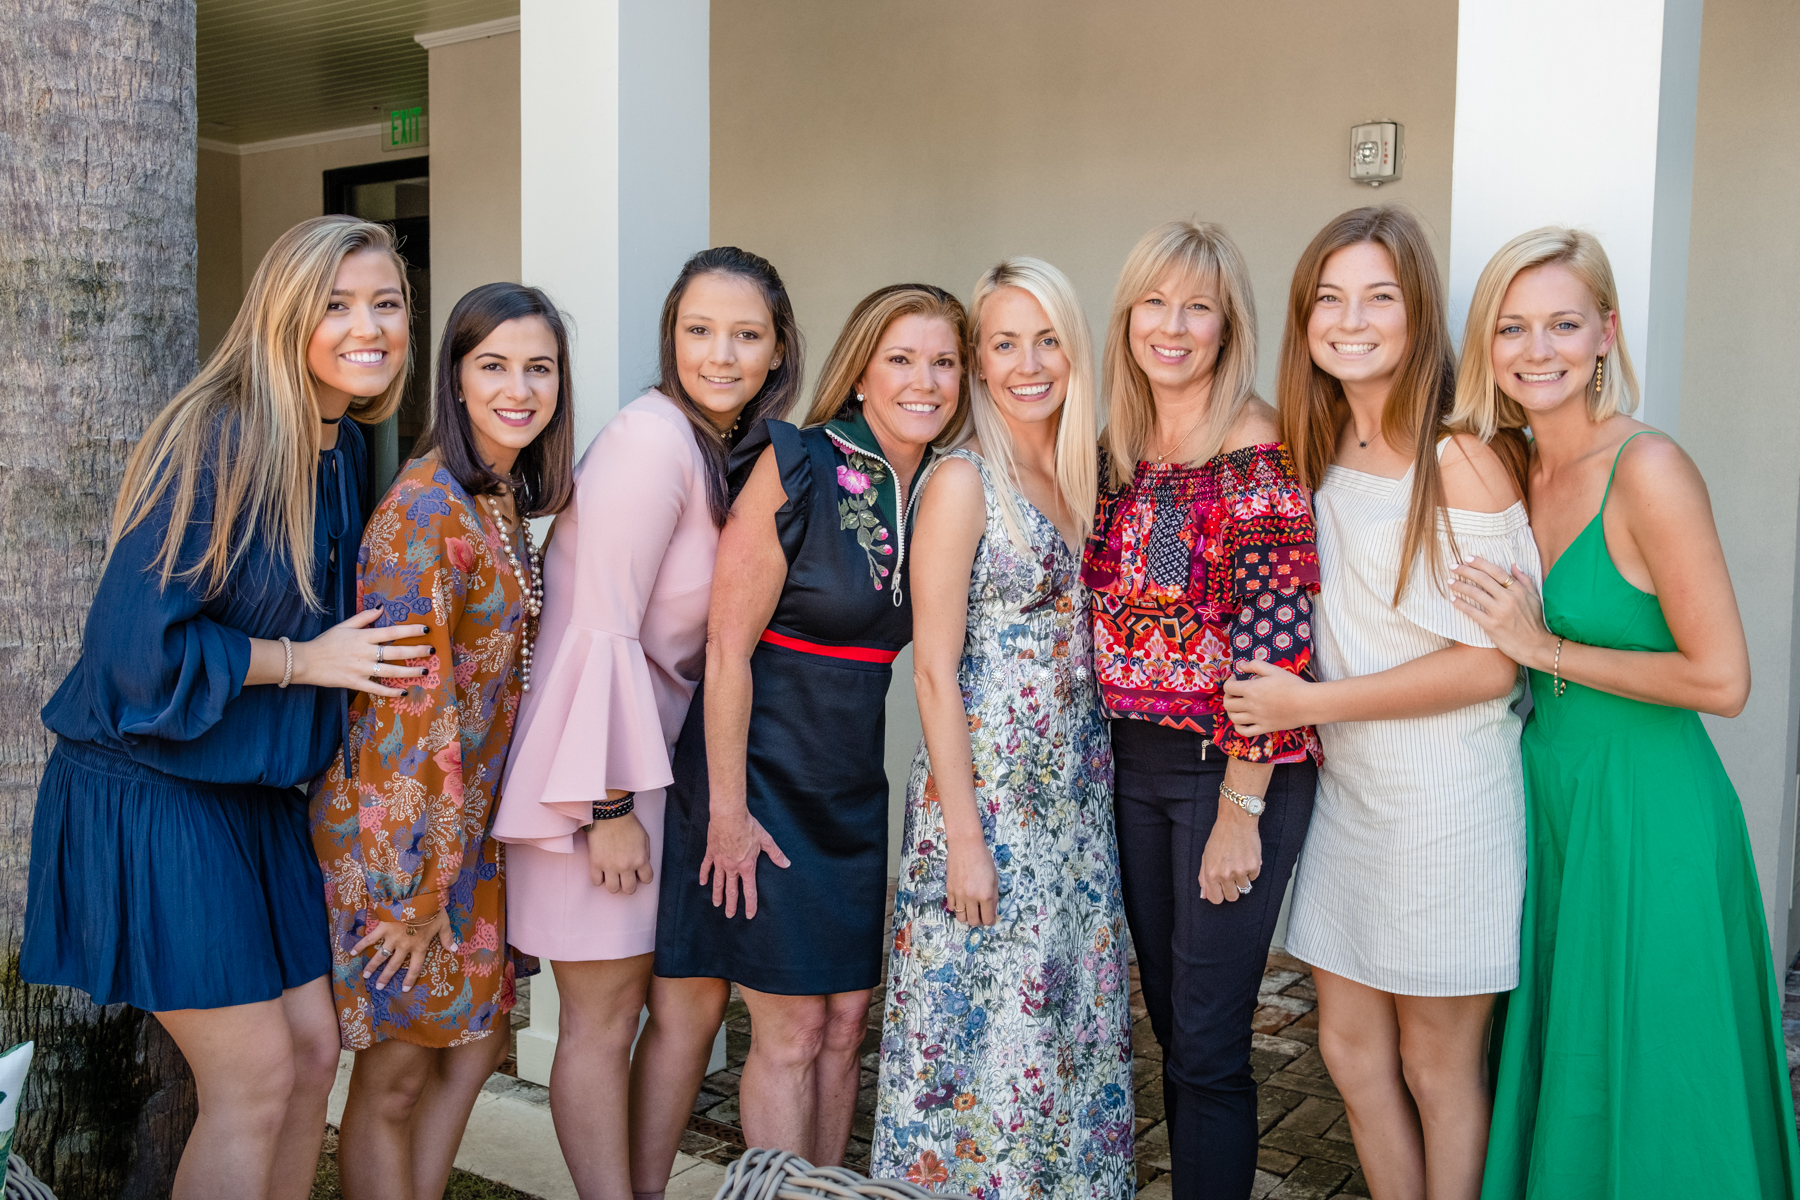 Jillian Attaway's family celebrating at her bridal shower // Rhyme & Reason